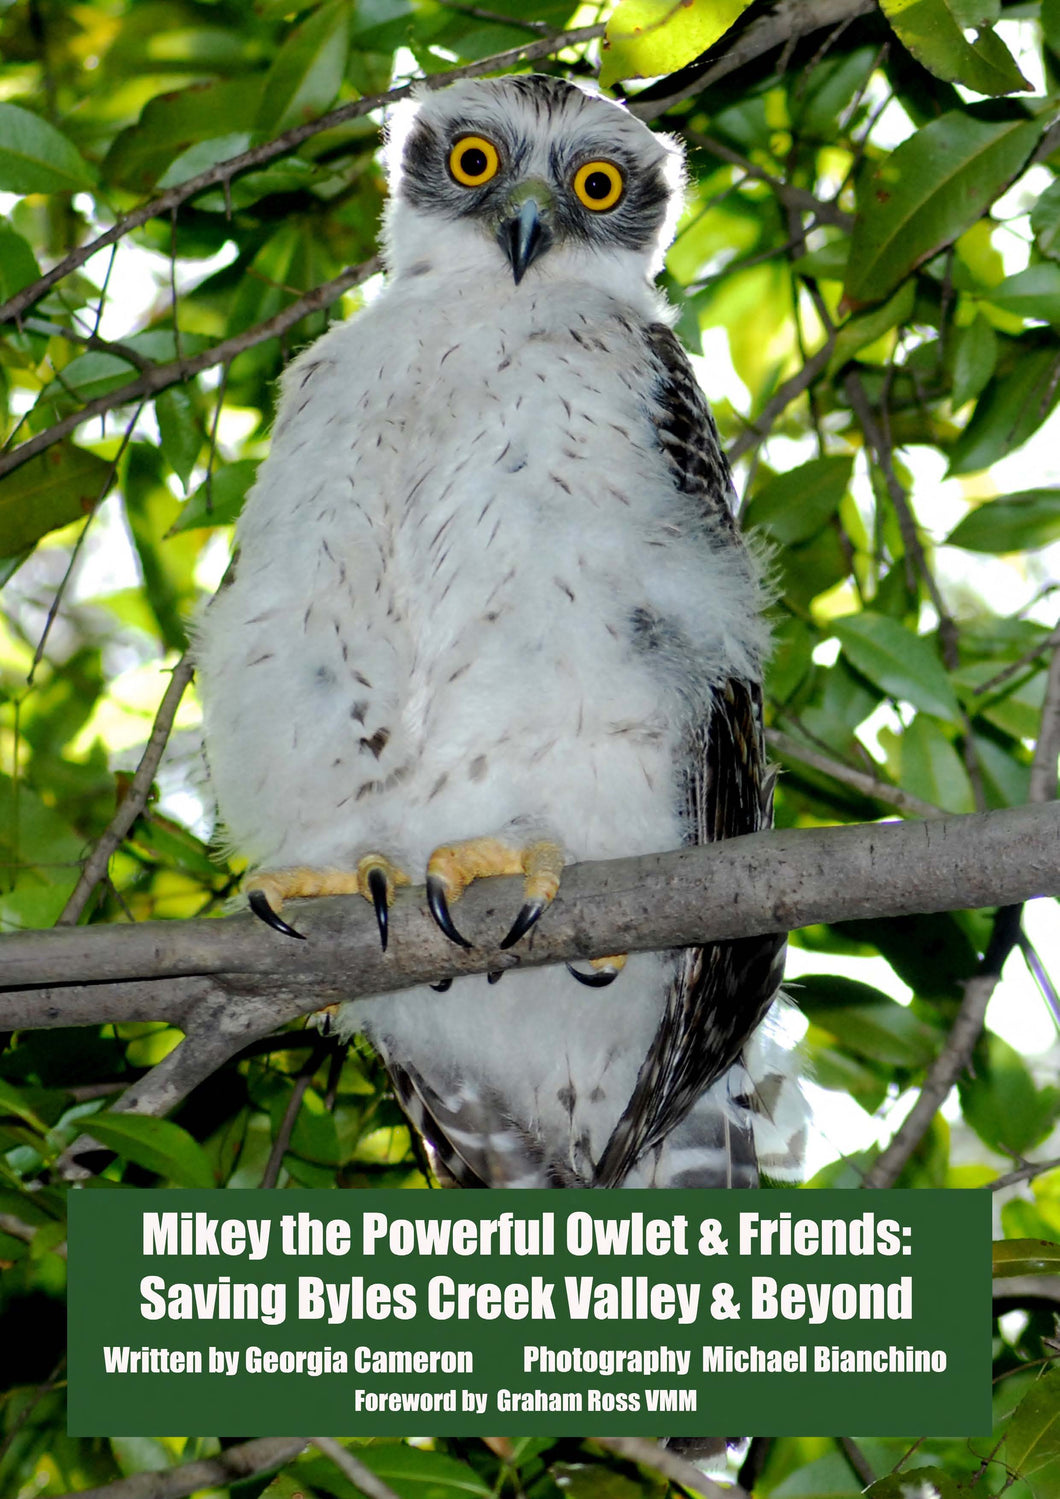 SOLD OUT SECOND POSTER - Mikey the Powerful Owlet - Poster (price includes domestic postage & handling)